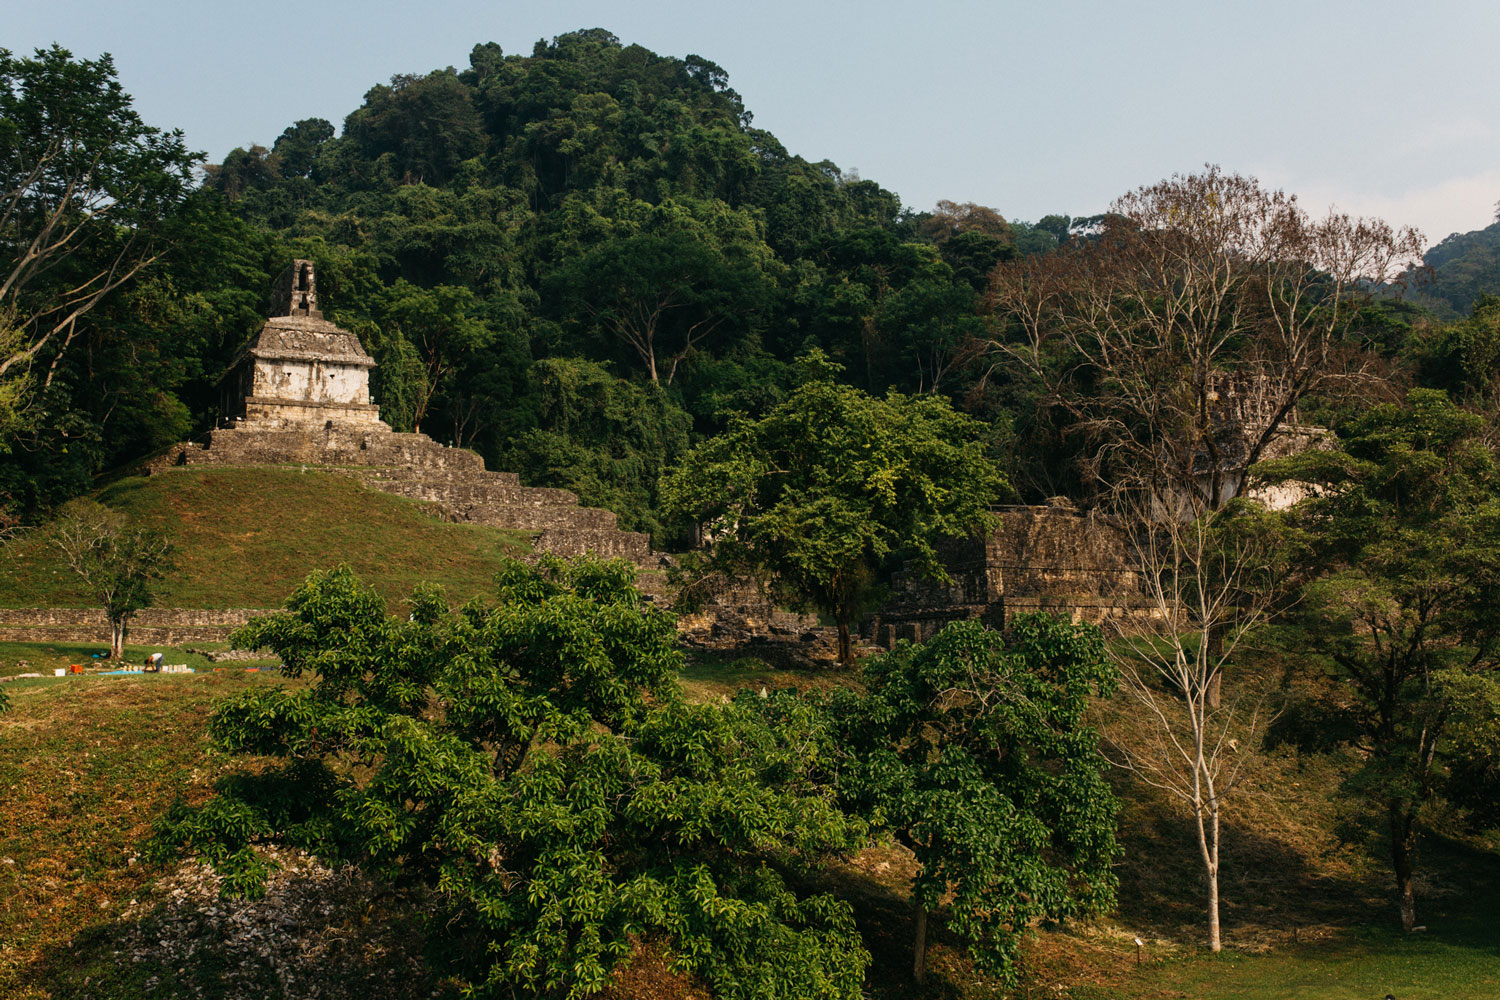 The Temple of the Foliated Cross. Left: The Temple of the Sun.